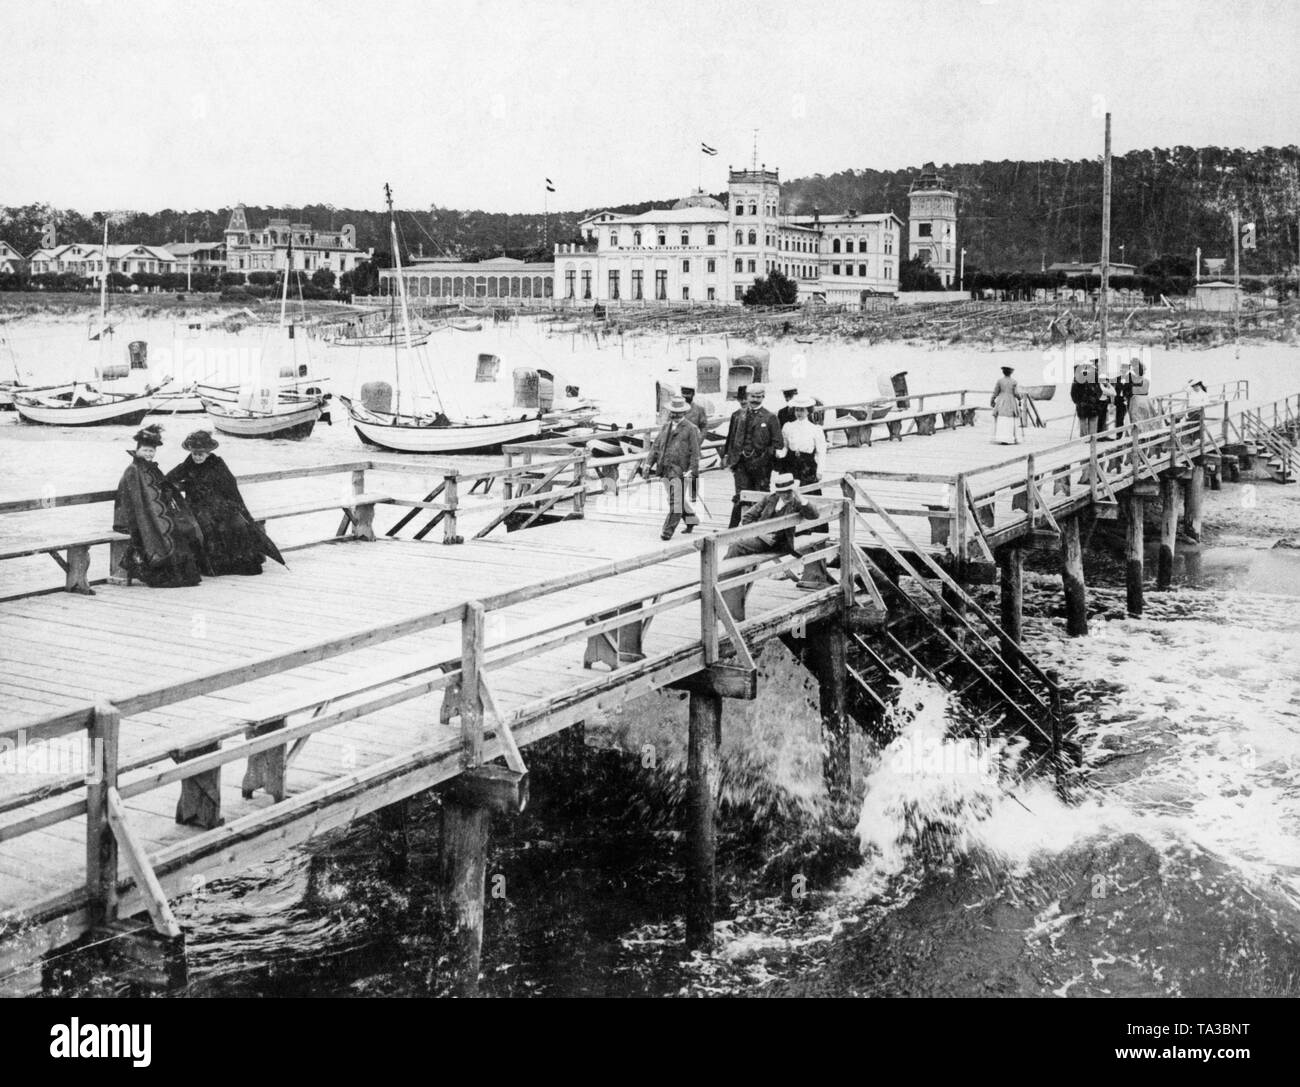 Holidaymakers on the pier in front of the seaside resort of Miedzyzdroje in Pomerania, on the beach are small sailing boats. - Stock Image